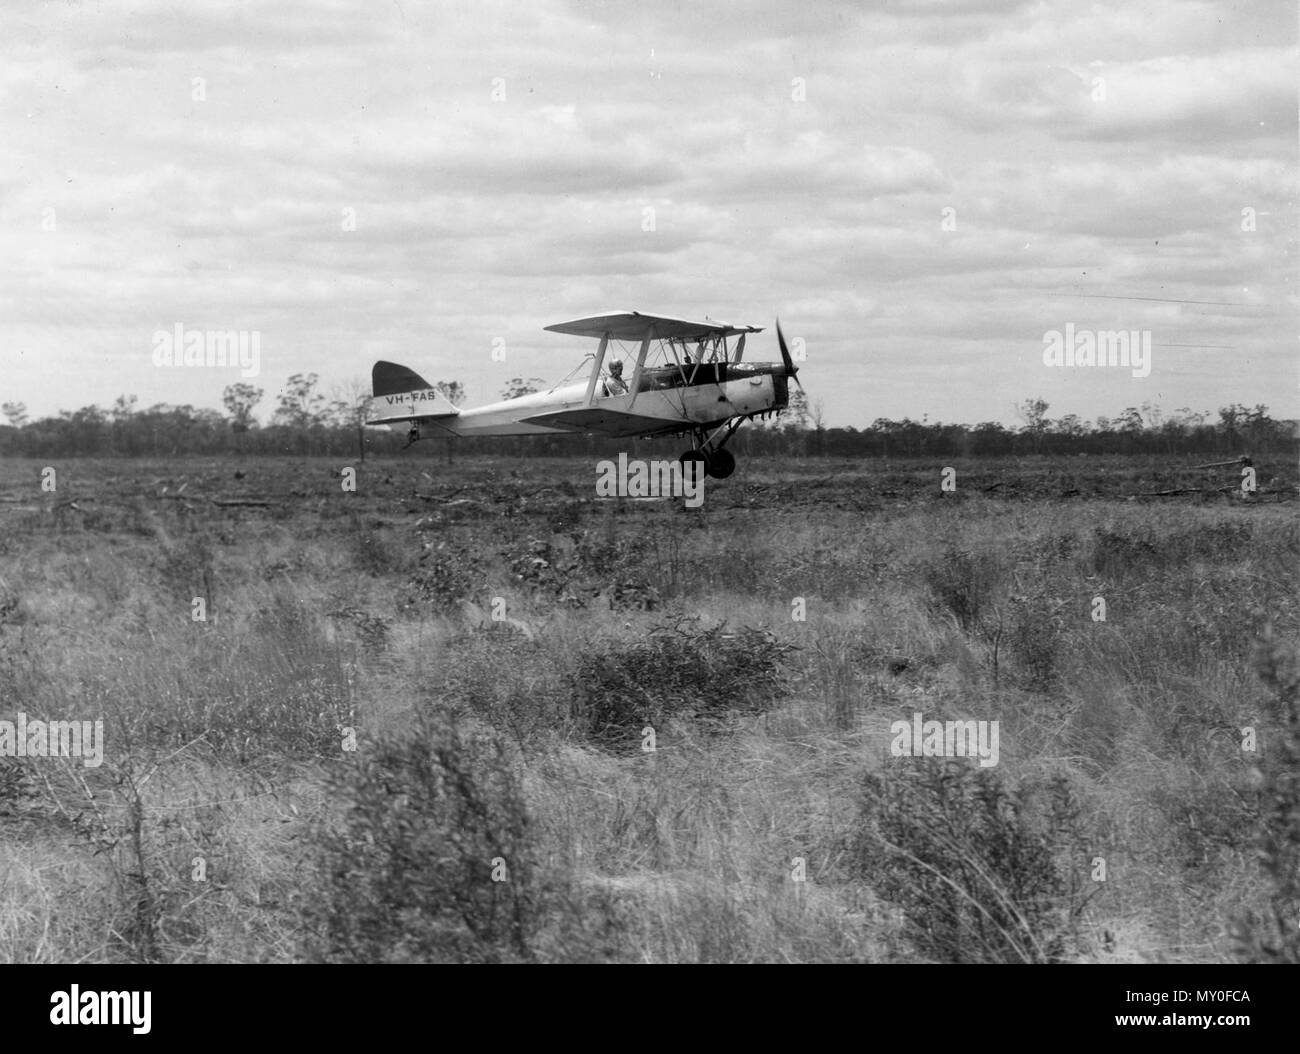 Tiger Moth plane used for for aerial sowing, November 1963. A de Havilland DH.82 Tiger Moth owned by Brown Williams Aviation Ltd was used for aerial seed sowing of the Fitzroy Basin scheme in the early 1960s.  This aircraft started life in the Royal Australian Air Force in 1942. It still flies today with the Royal Aero Club of Western Australia. - Stock Image